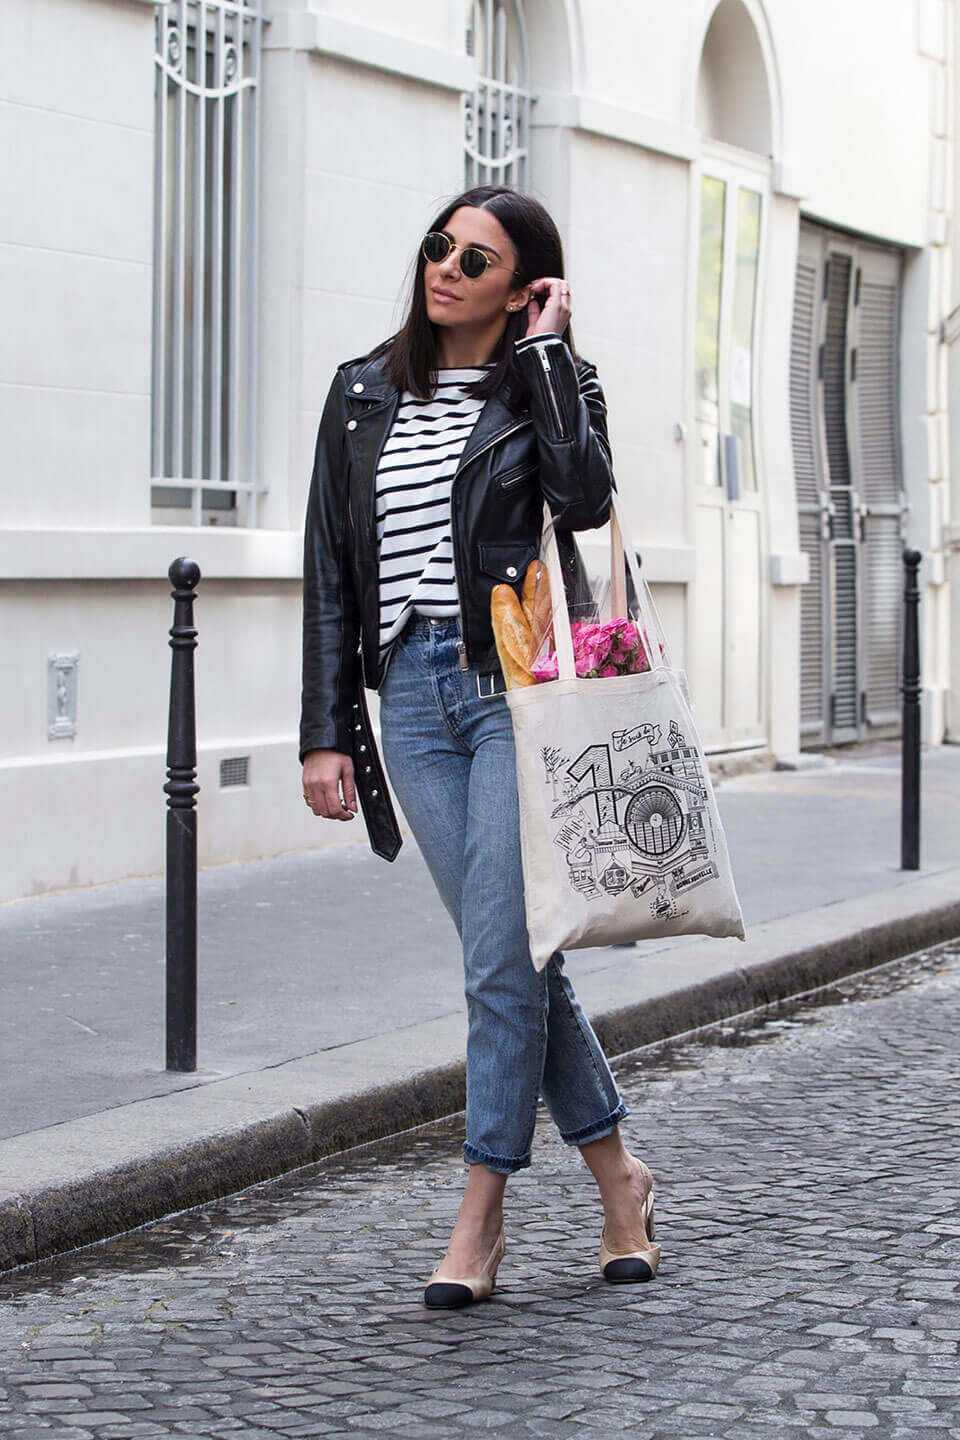 French fashion: breton t-shirt outfit